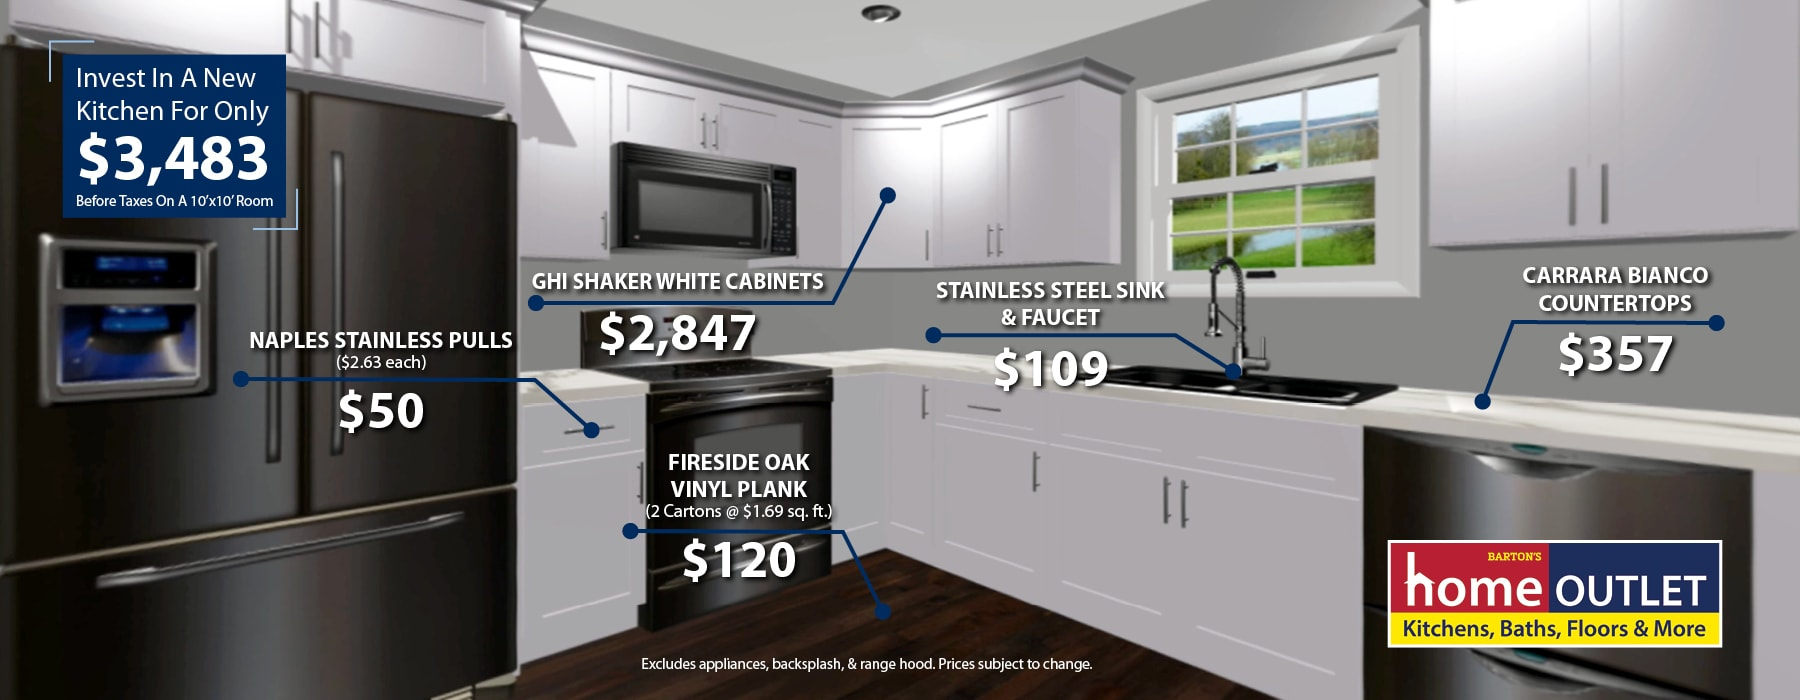 Invest In Your Kitchen